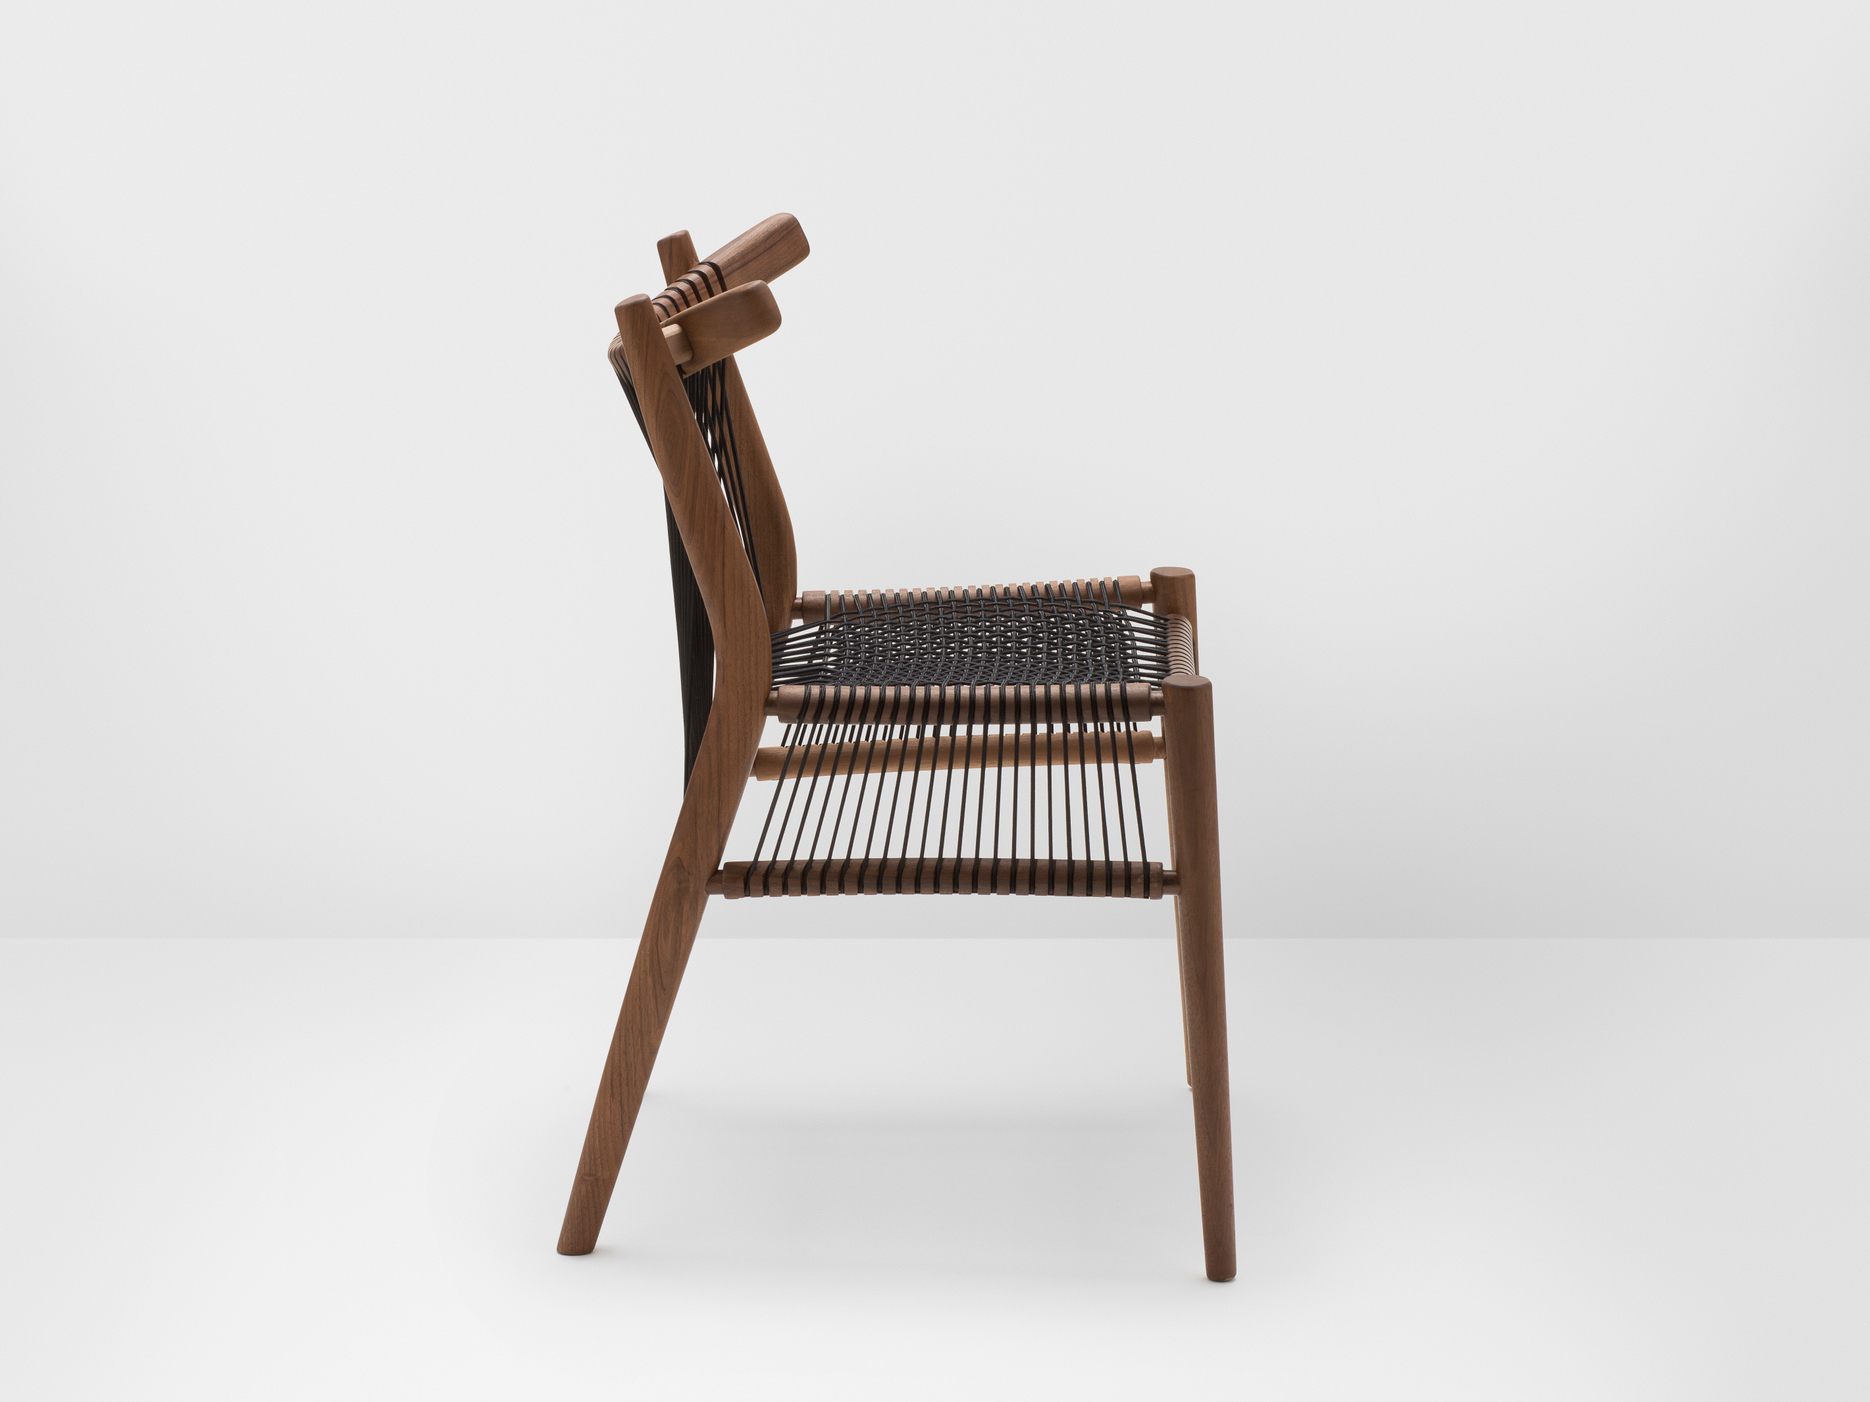 Loom walnut chair loom collection by h furniture design hierve for H furniture collection loom